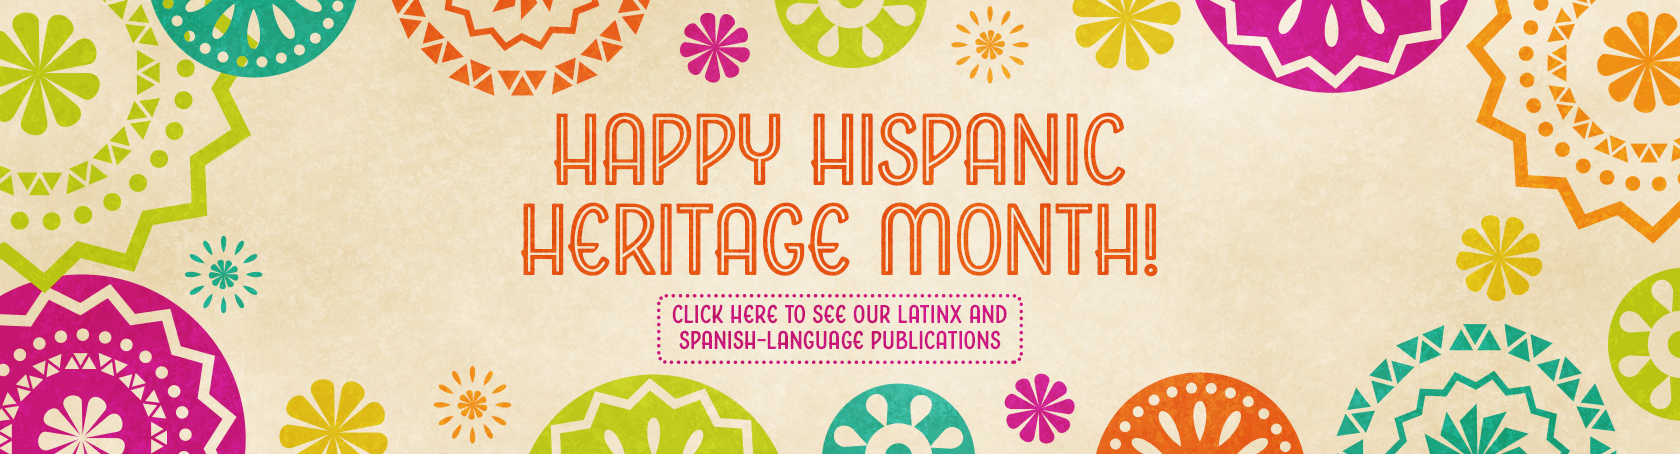 National Hispanic Heritage Month - Keyboard